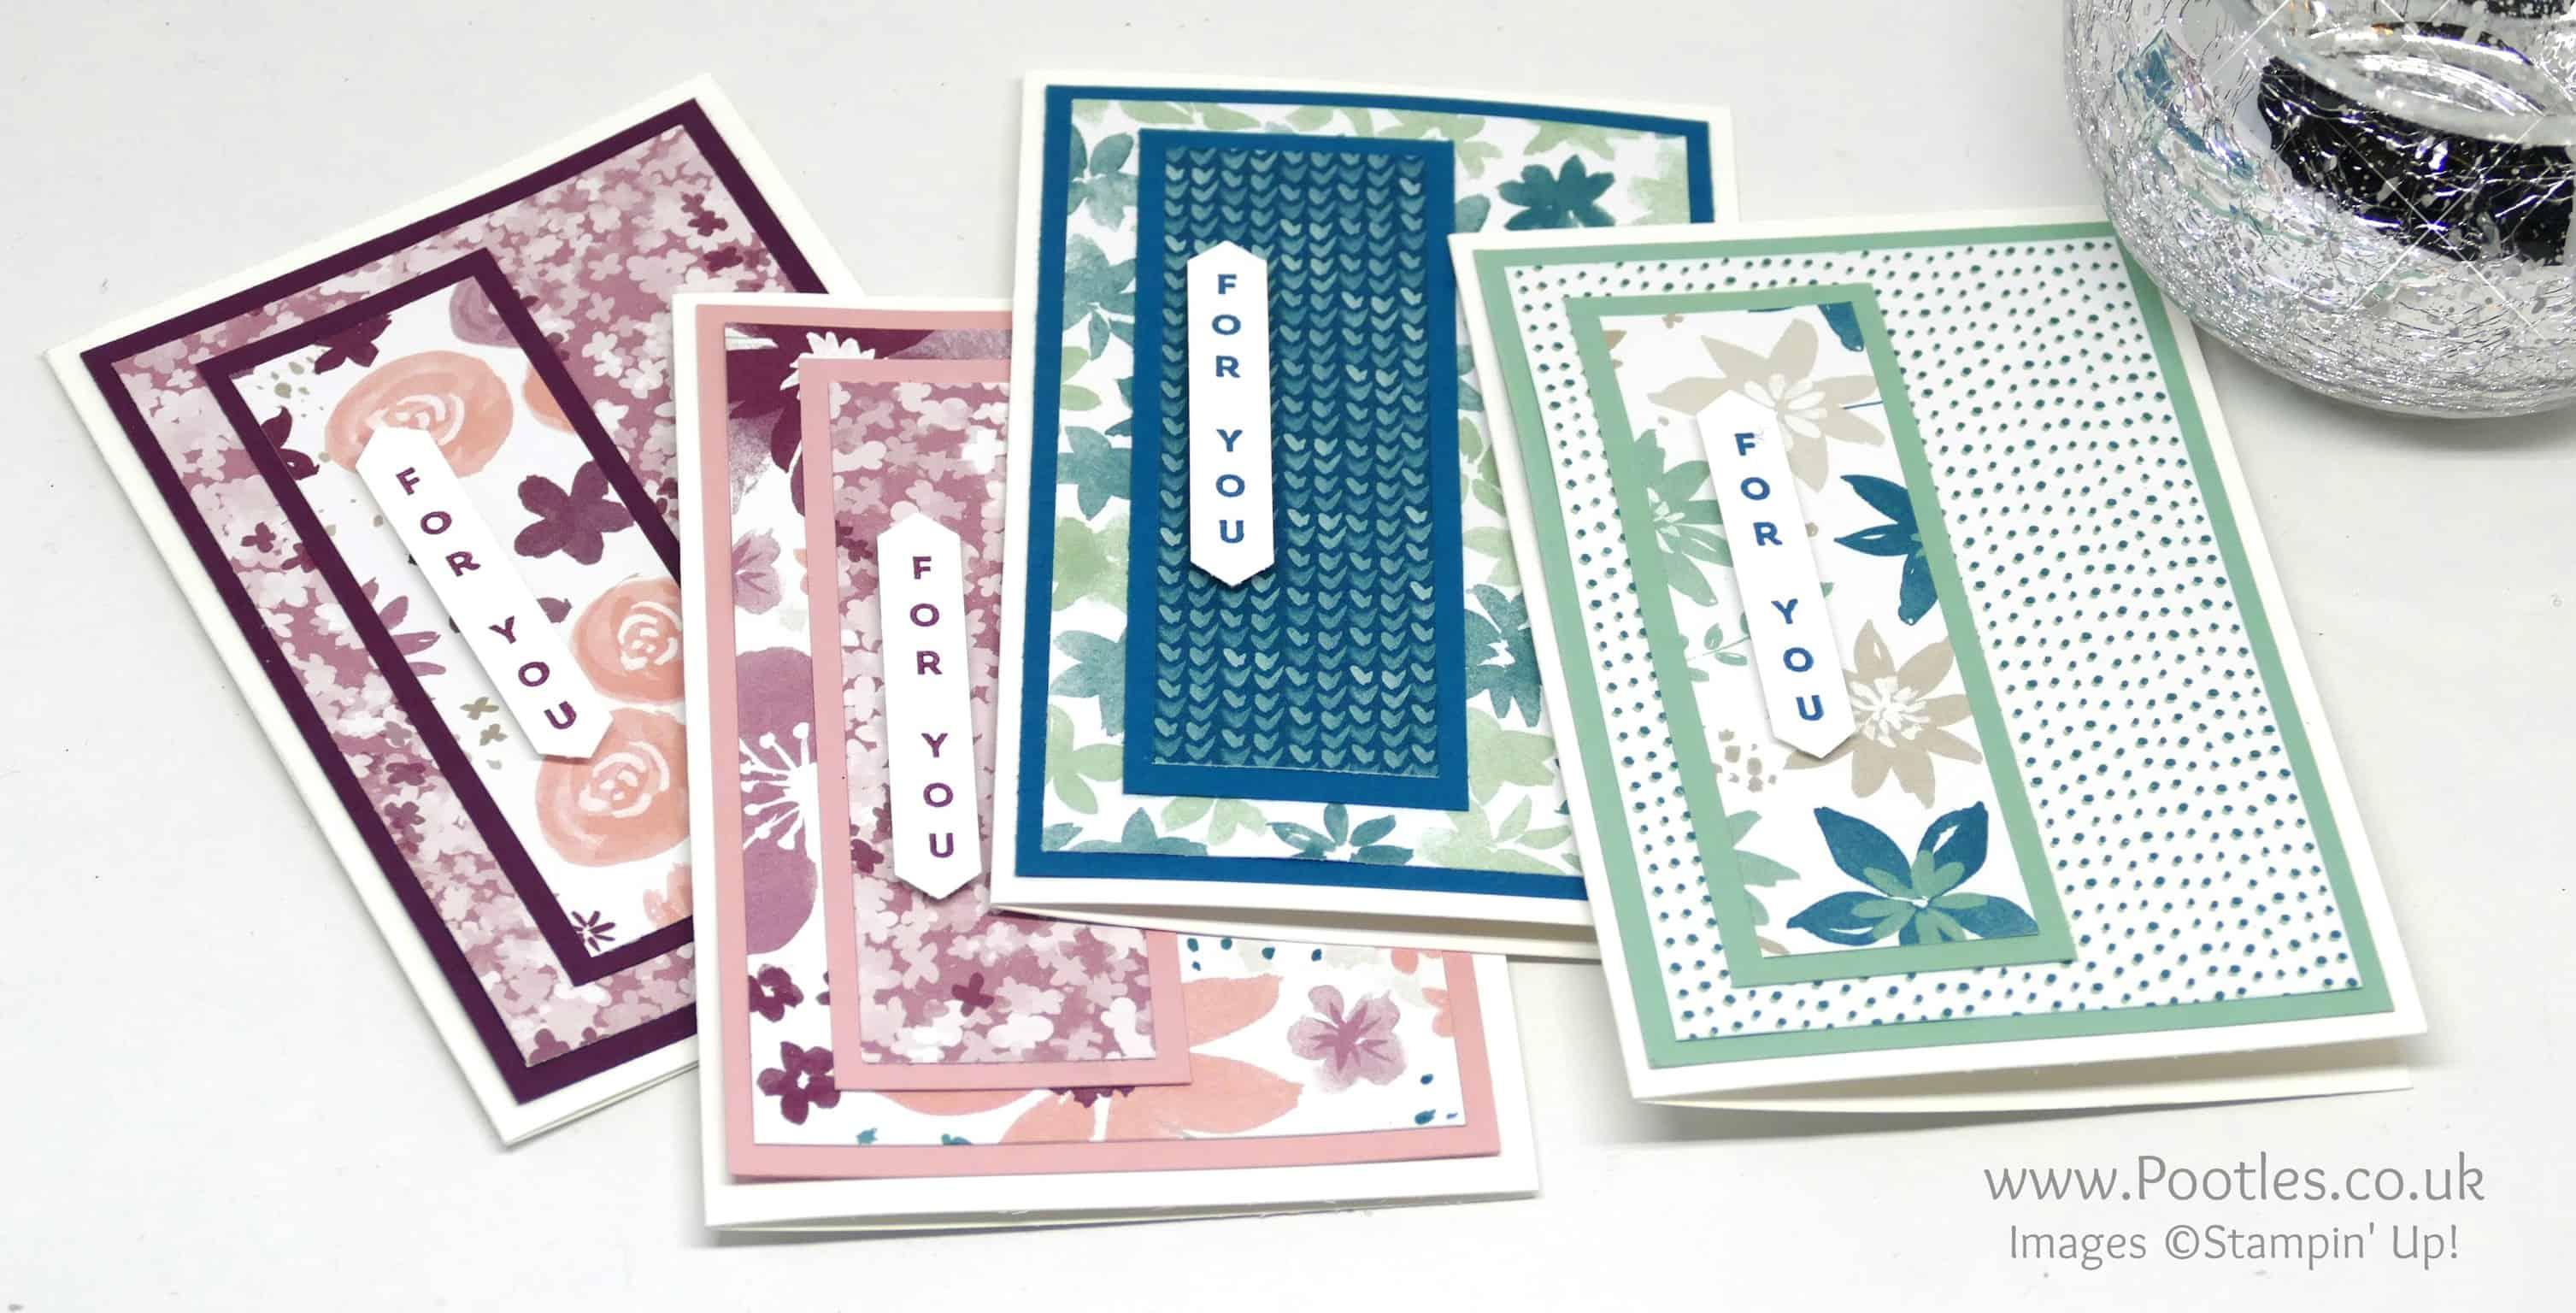 Blooms & Bliss Customer Thank You Cards